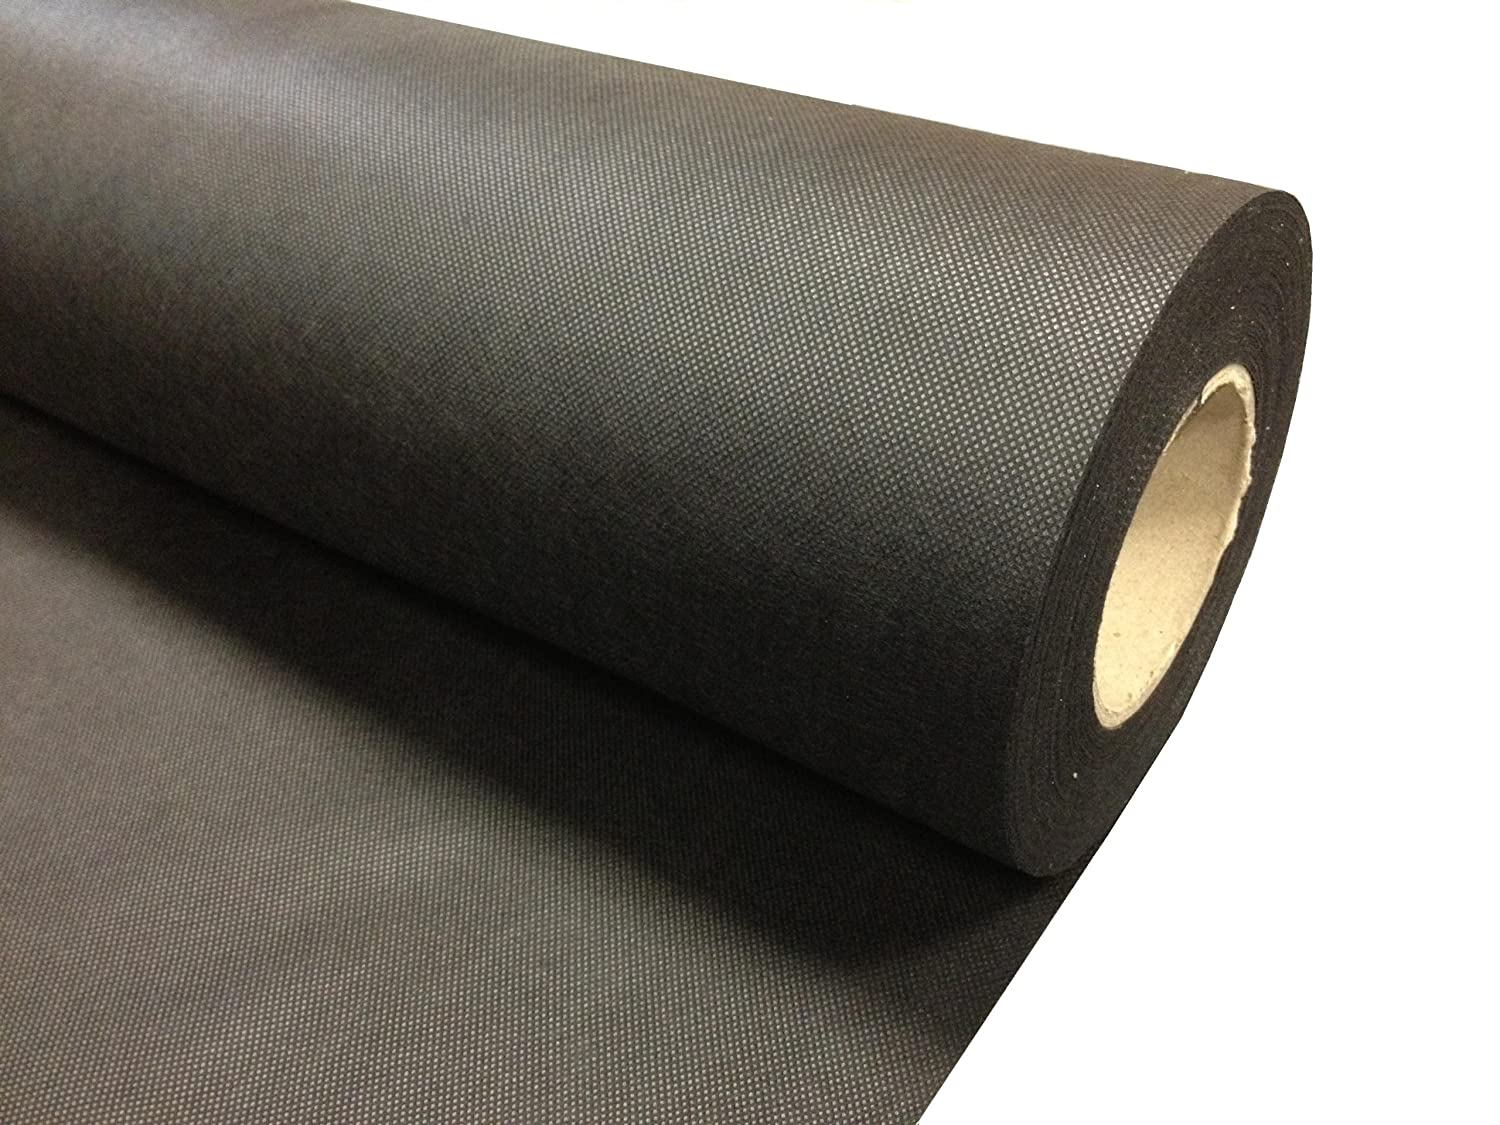 WEED CONTROL FABRIC, SPUNBOND, BLACK GROUND COVER 1m X 100m LANDSCAPE MATERIAL